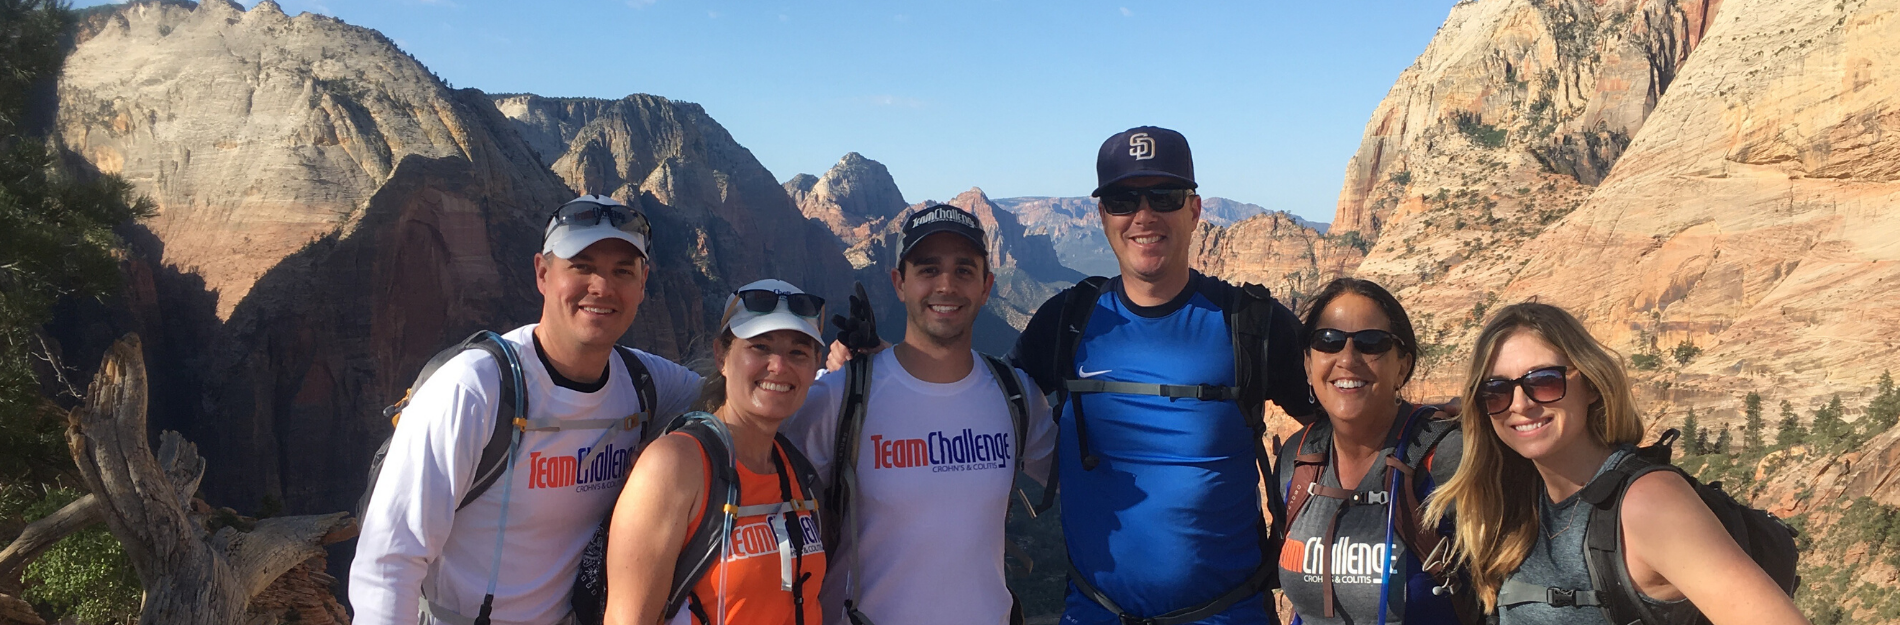 Zion hike hero - Hubspot